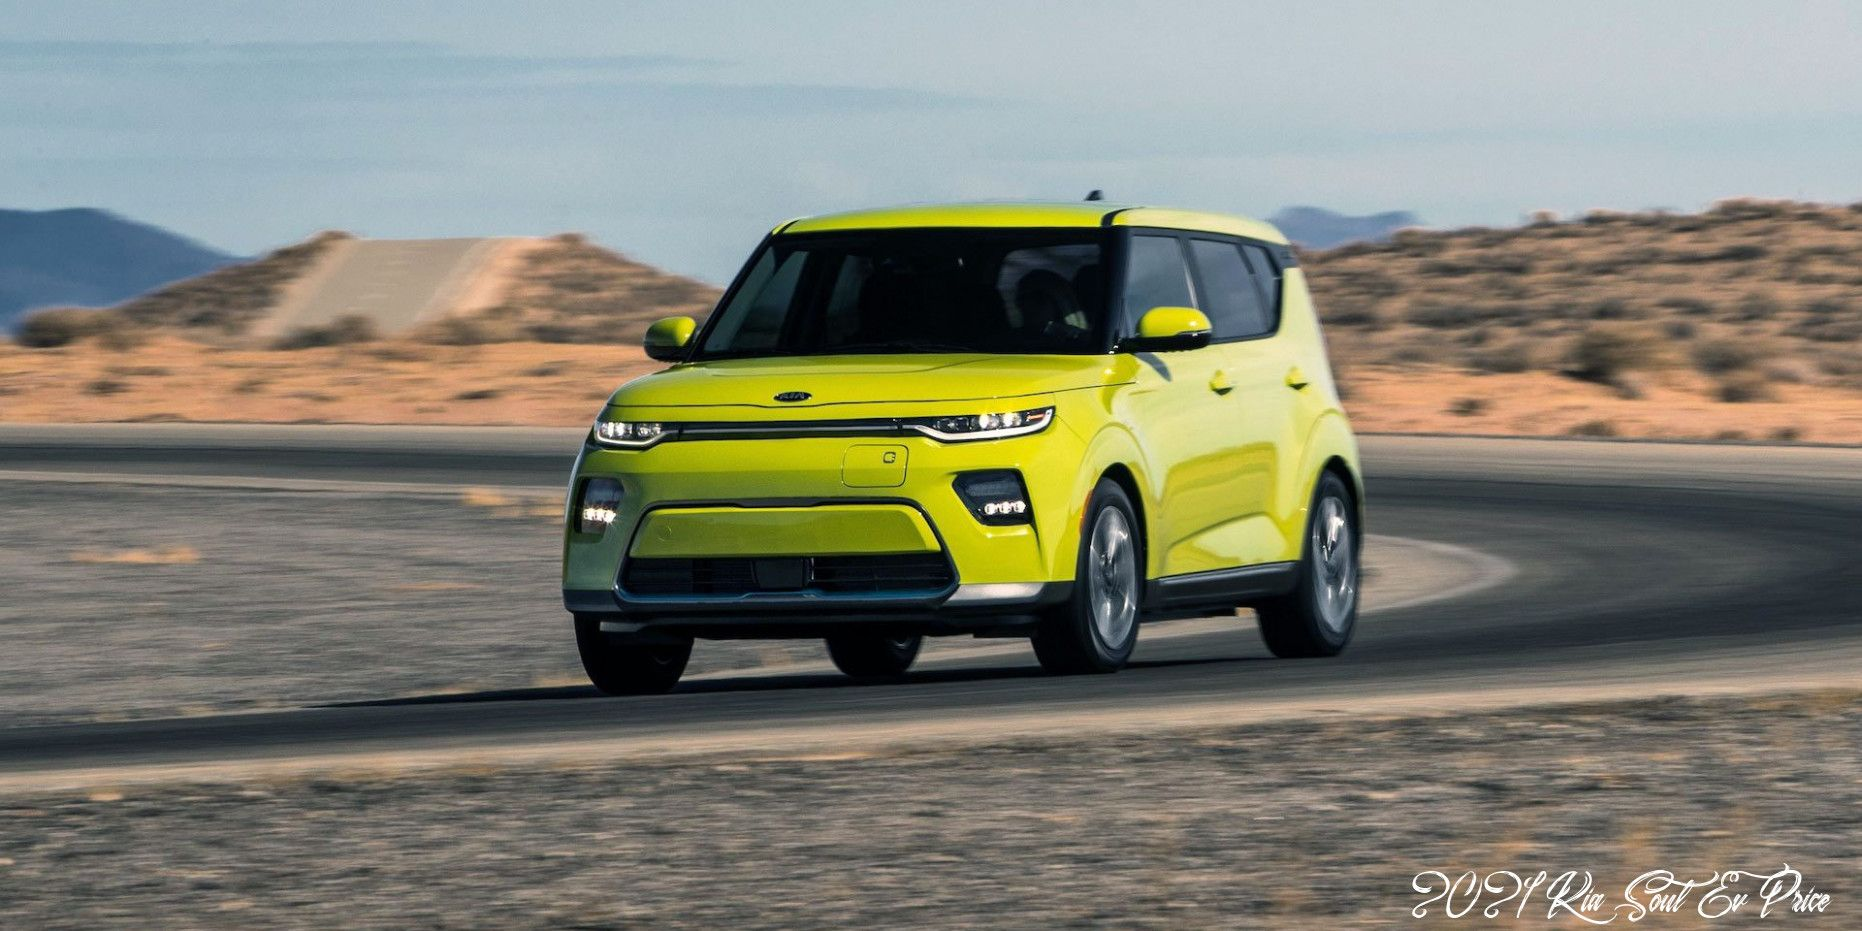 2021 Kia Soul Ev Price Wallpaper In 2020 Kia Soul Kia Best New Cars